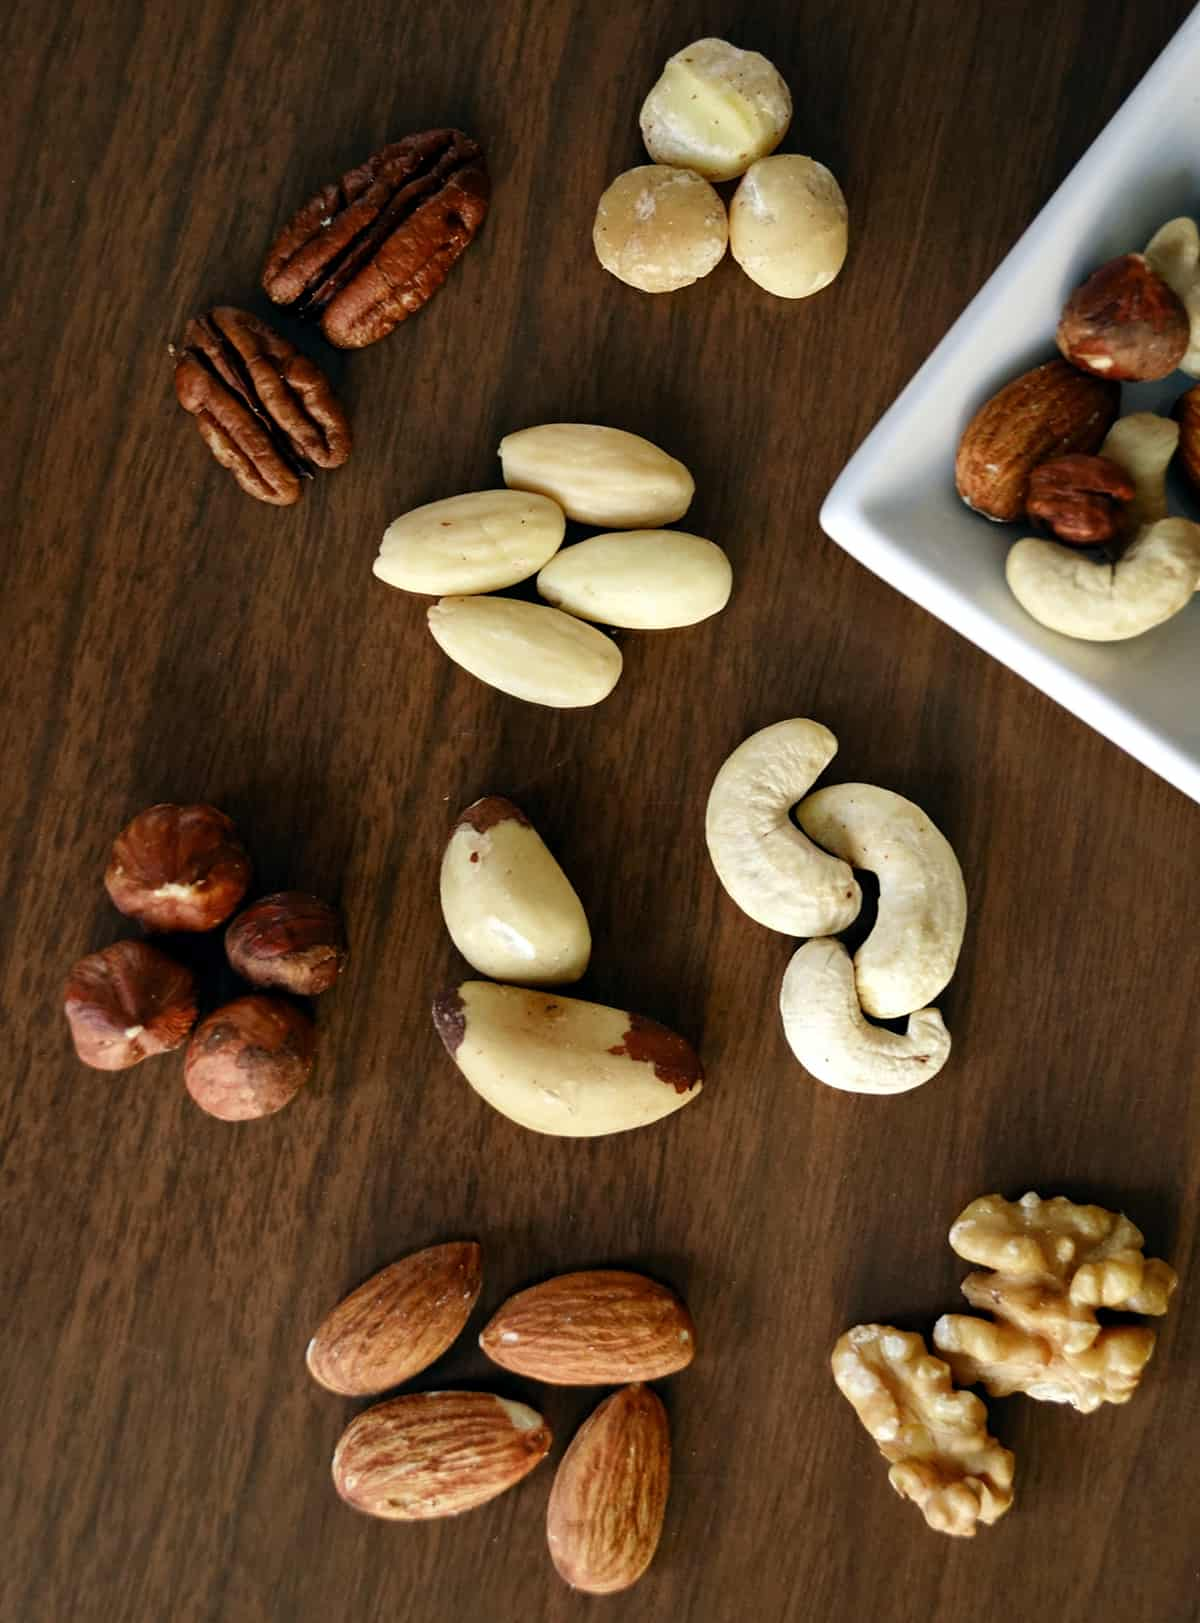 selection of nuts on a wooden table